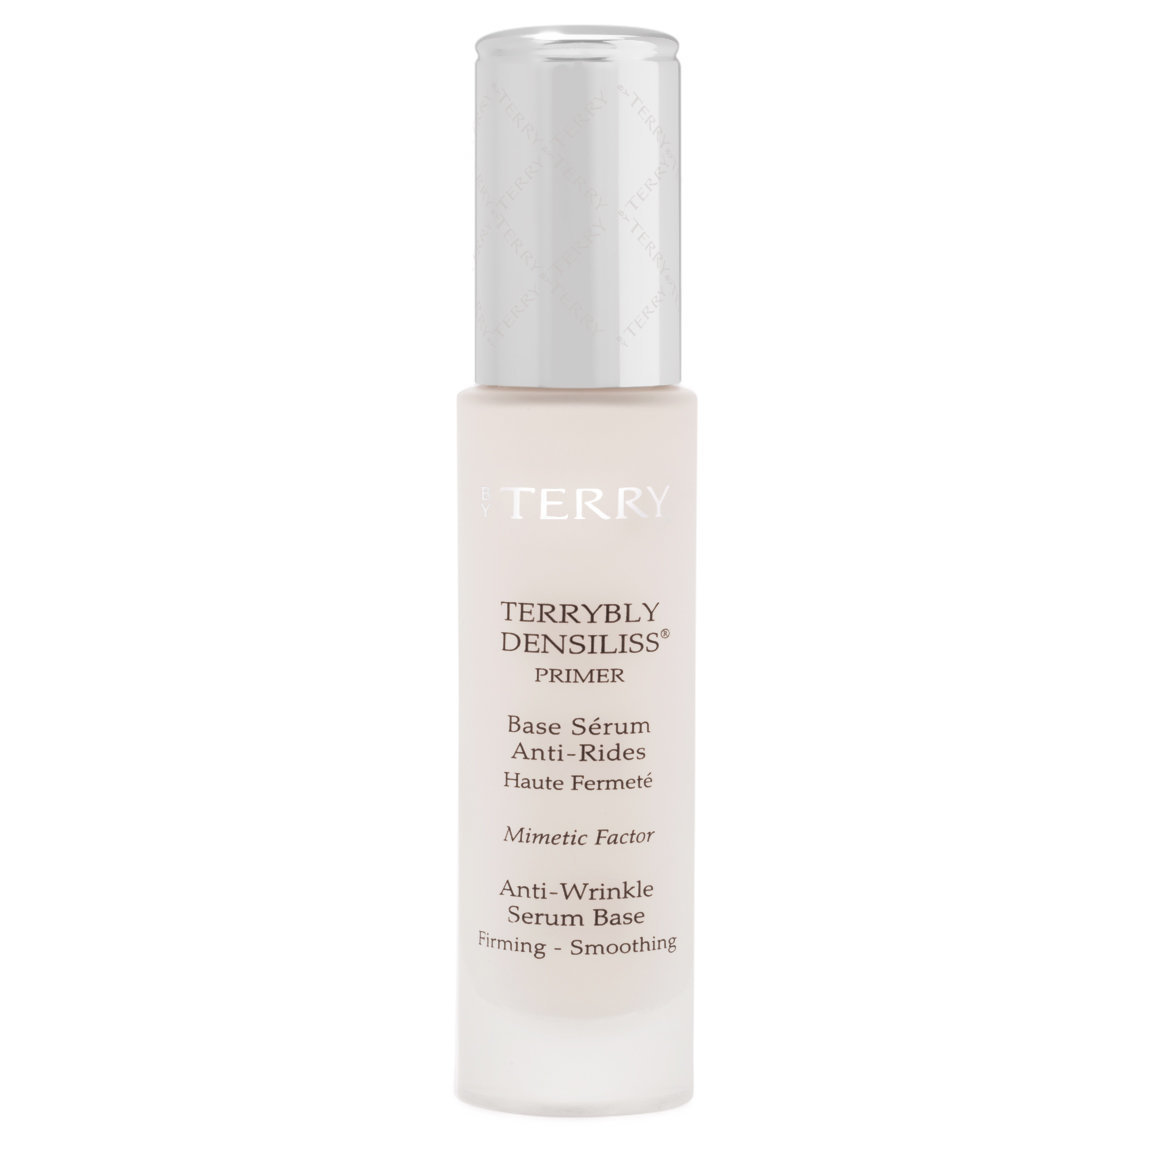 BY TERRY Terrybly Densiliss Primer product smear.